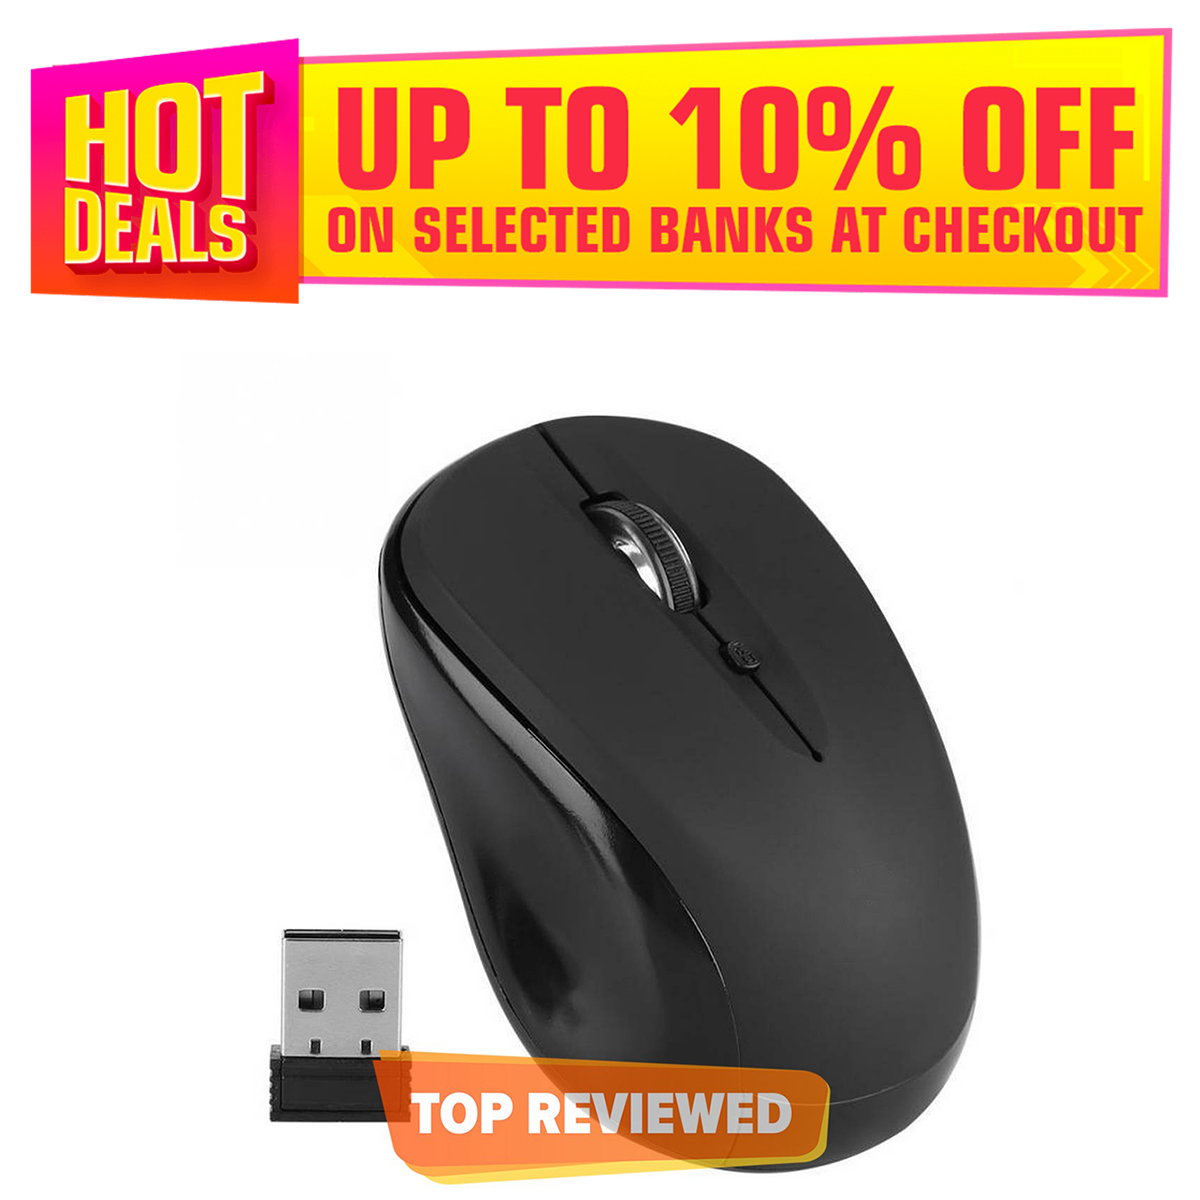 Wireless Mouse 2.4G Wireless Optical USB Mouse for Laptops Computers